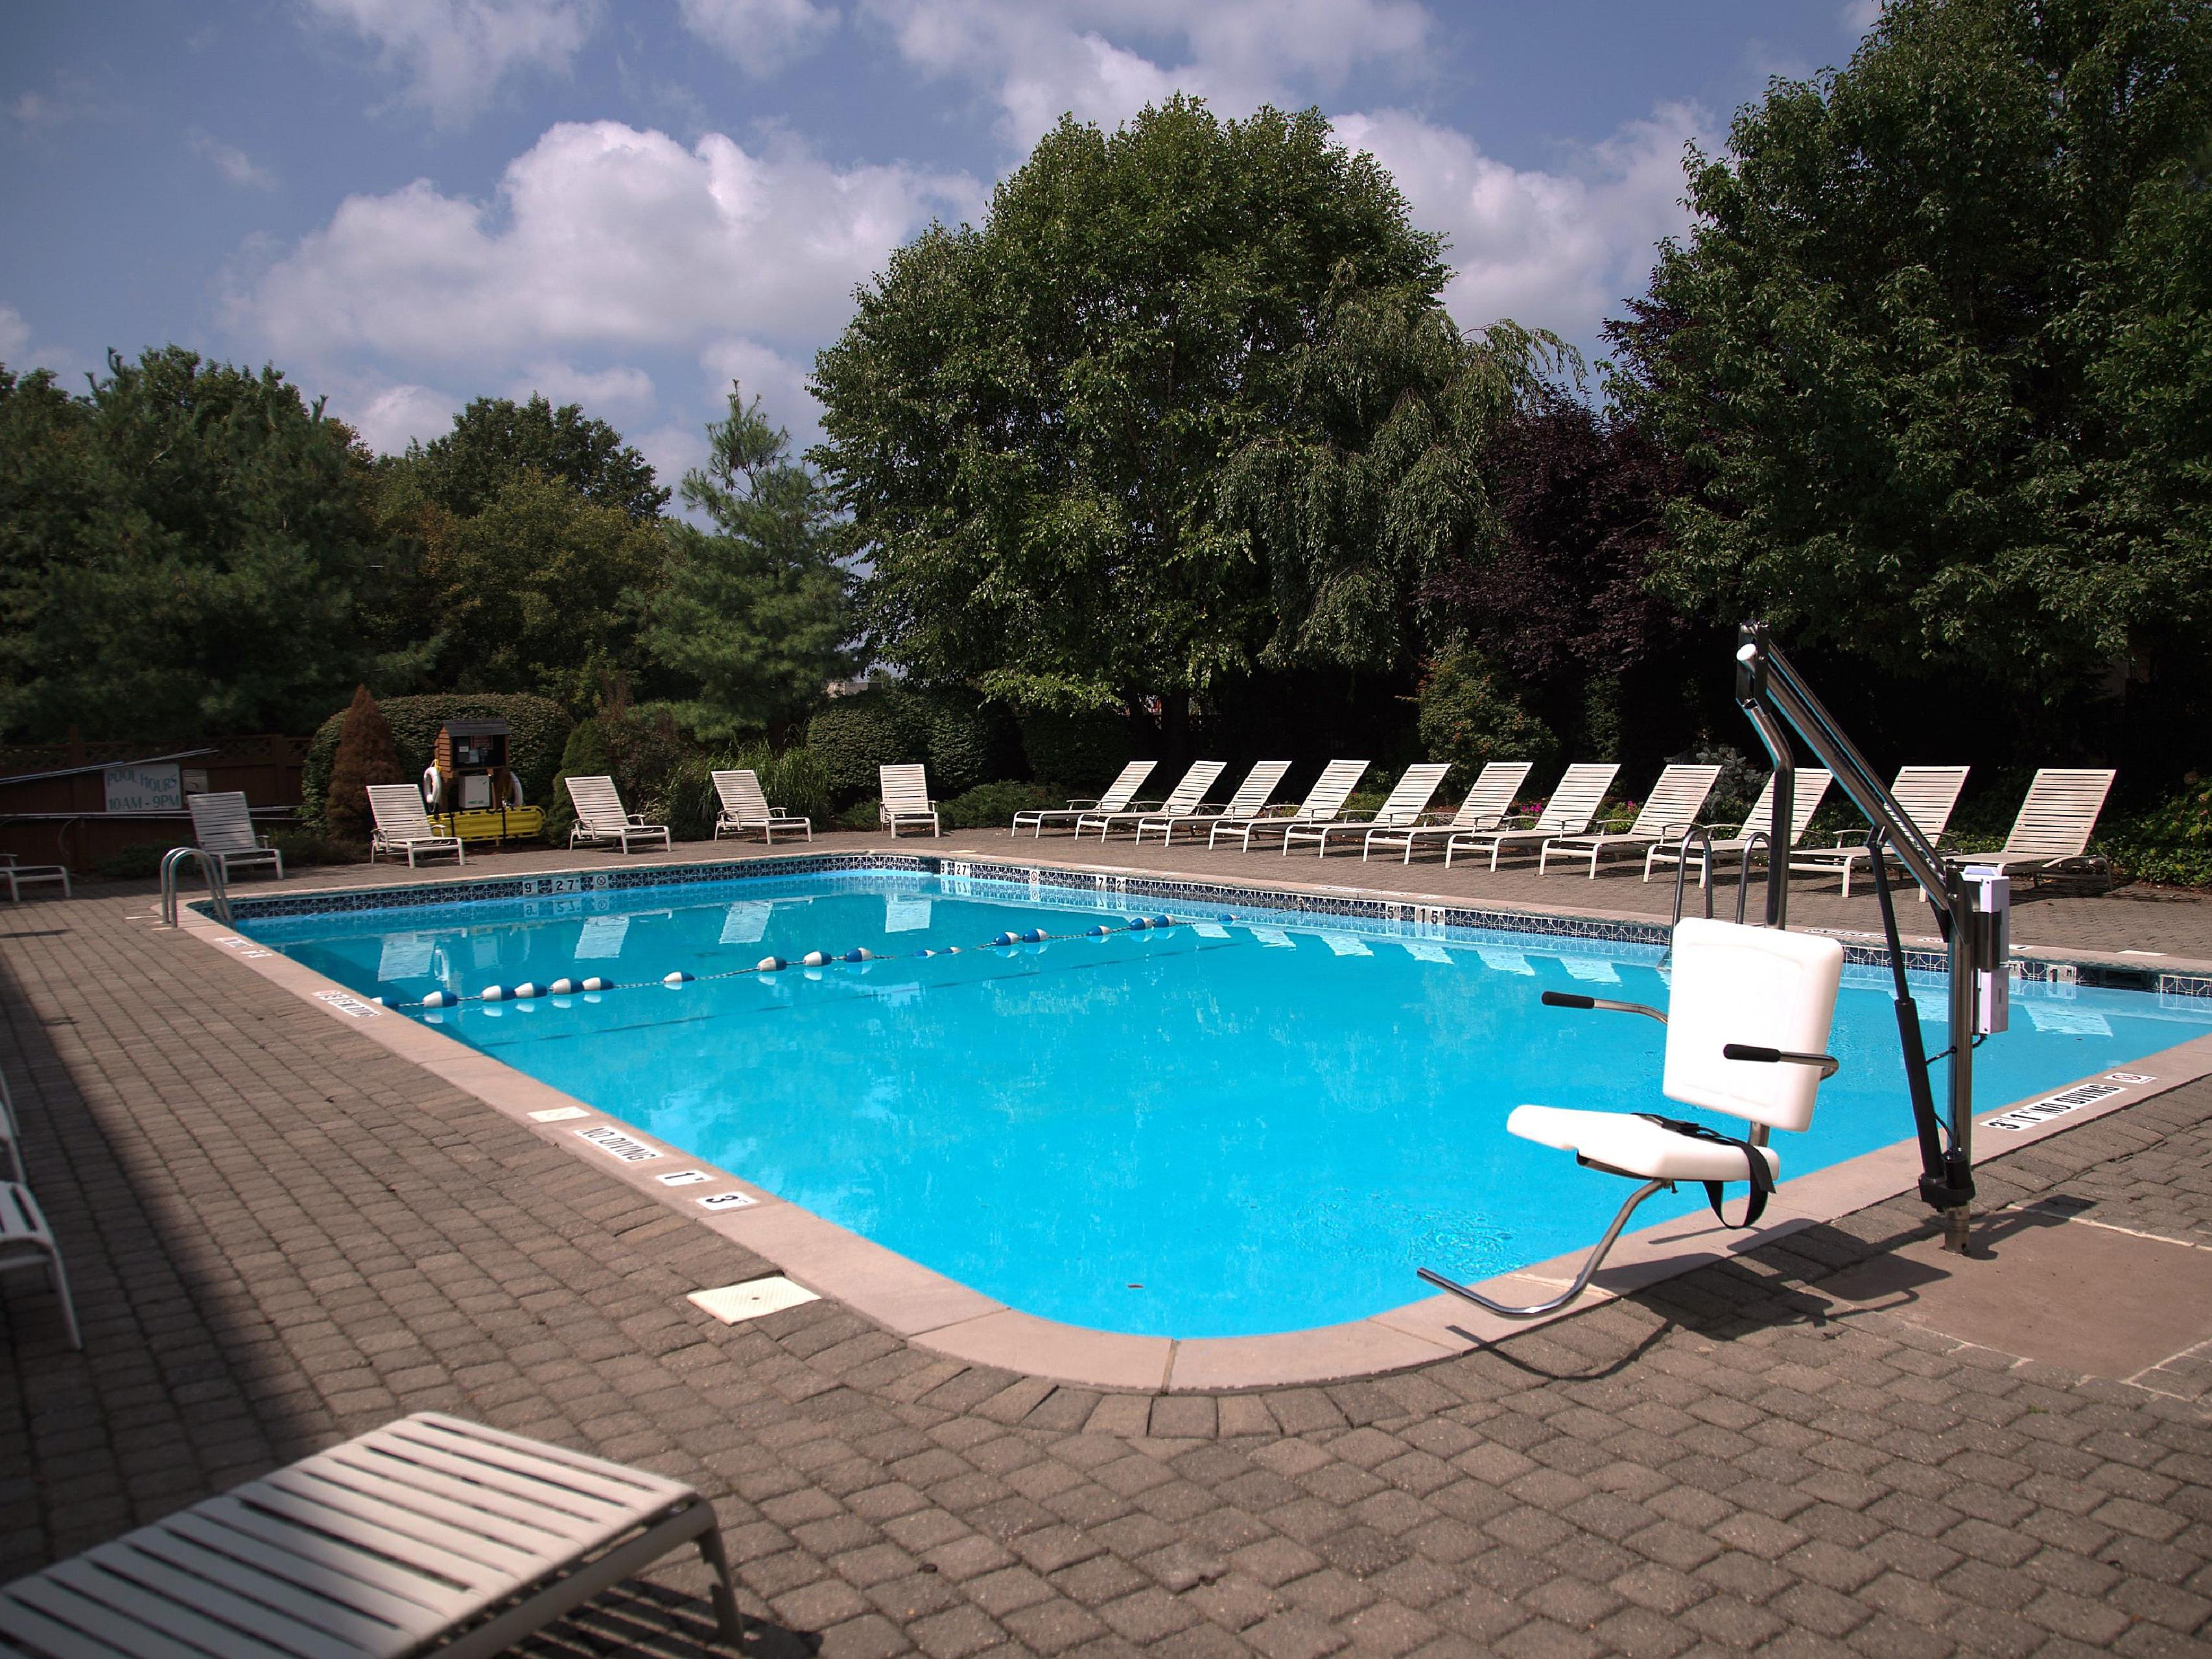 Holiday Inn Hotel & Suites Parsippany Fairfield Hotel by IHG